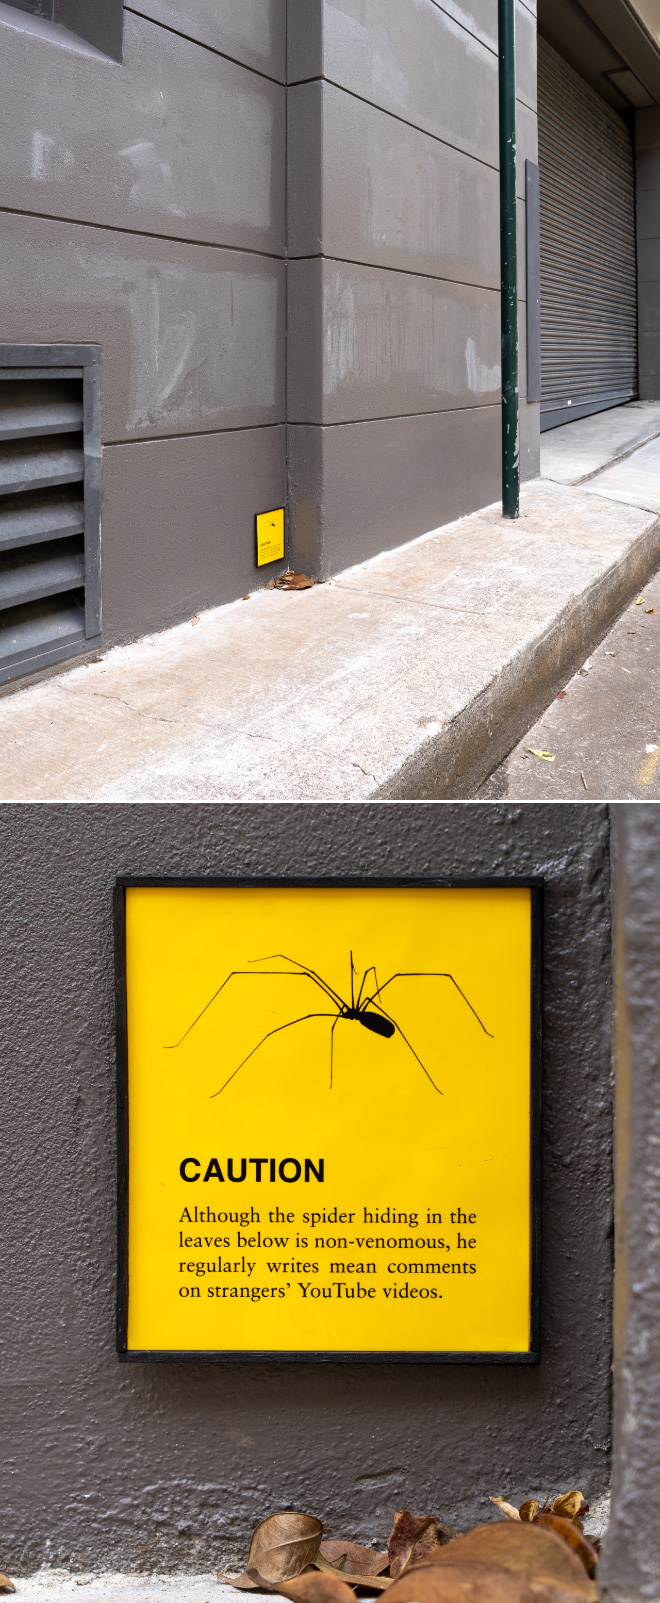 Funny sign by Australian artist Michael Pederson.